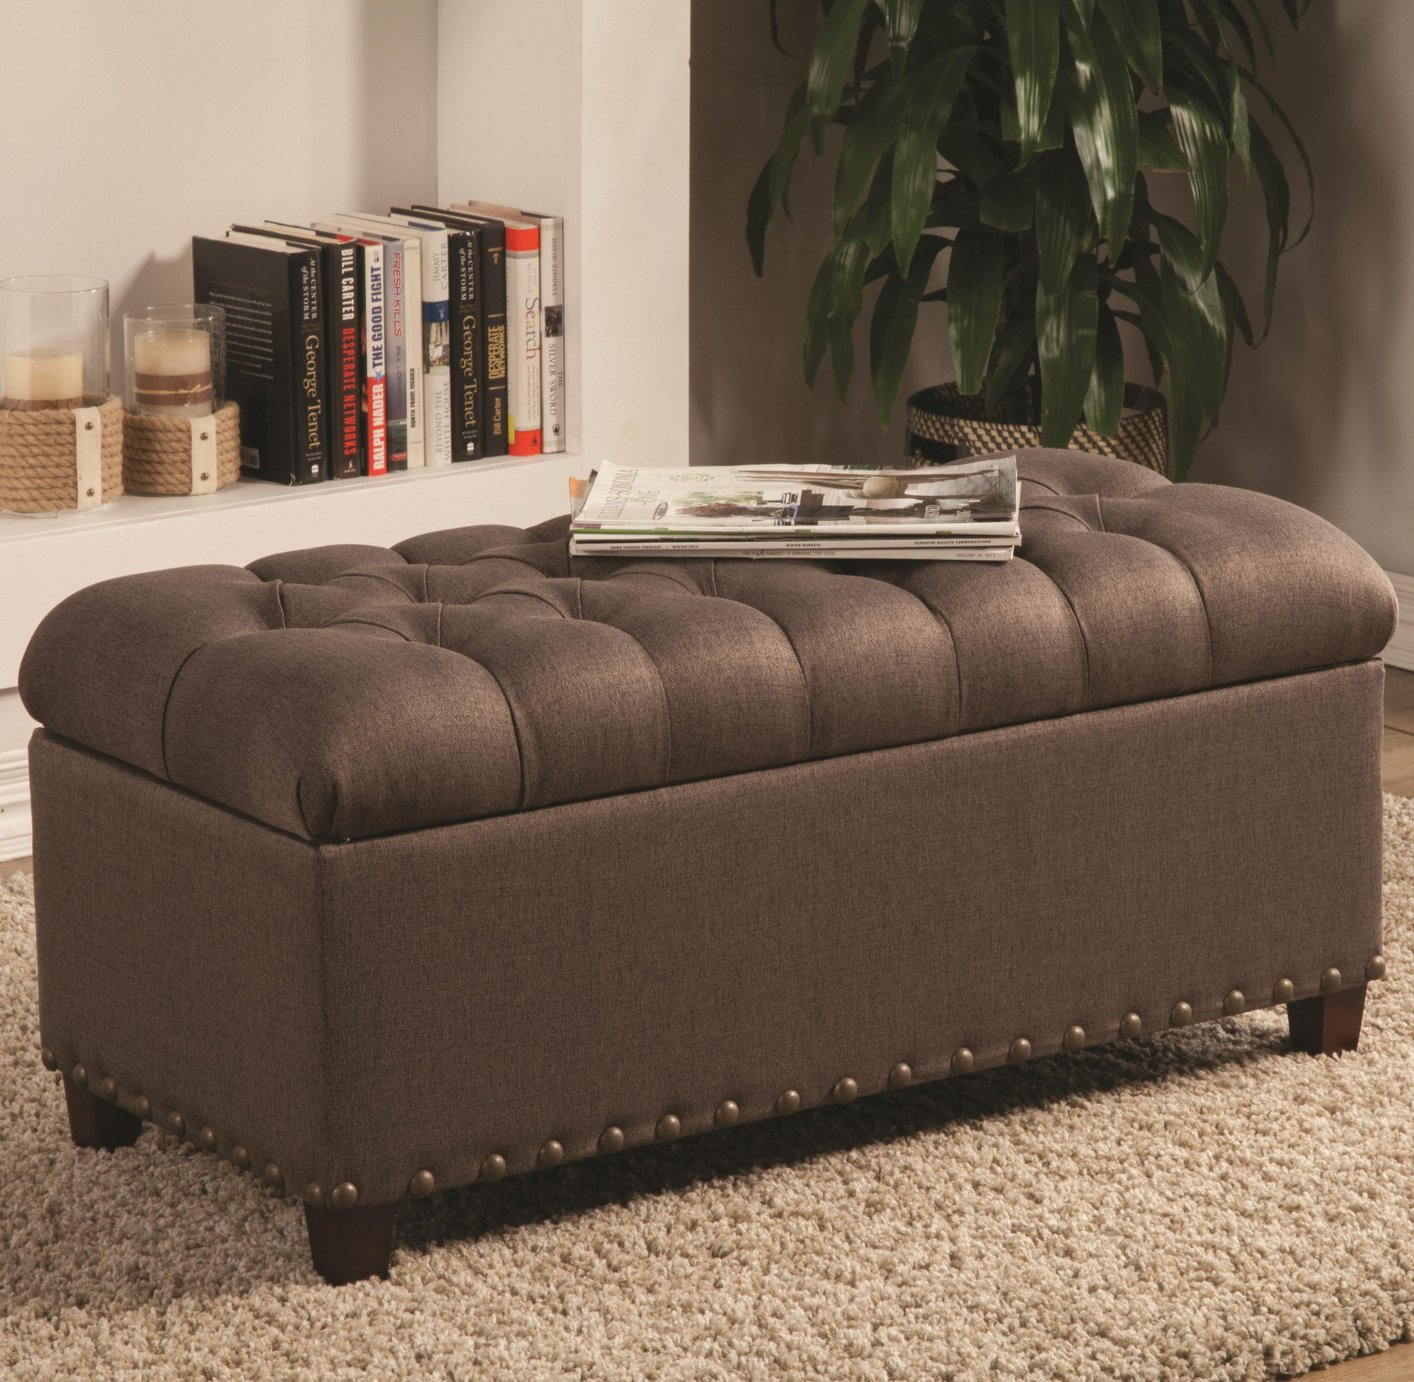 Brown Fabric Storage Bench Sofa Bench With Storage C59